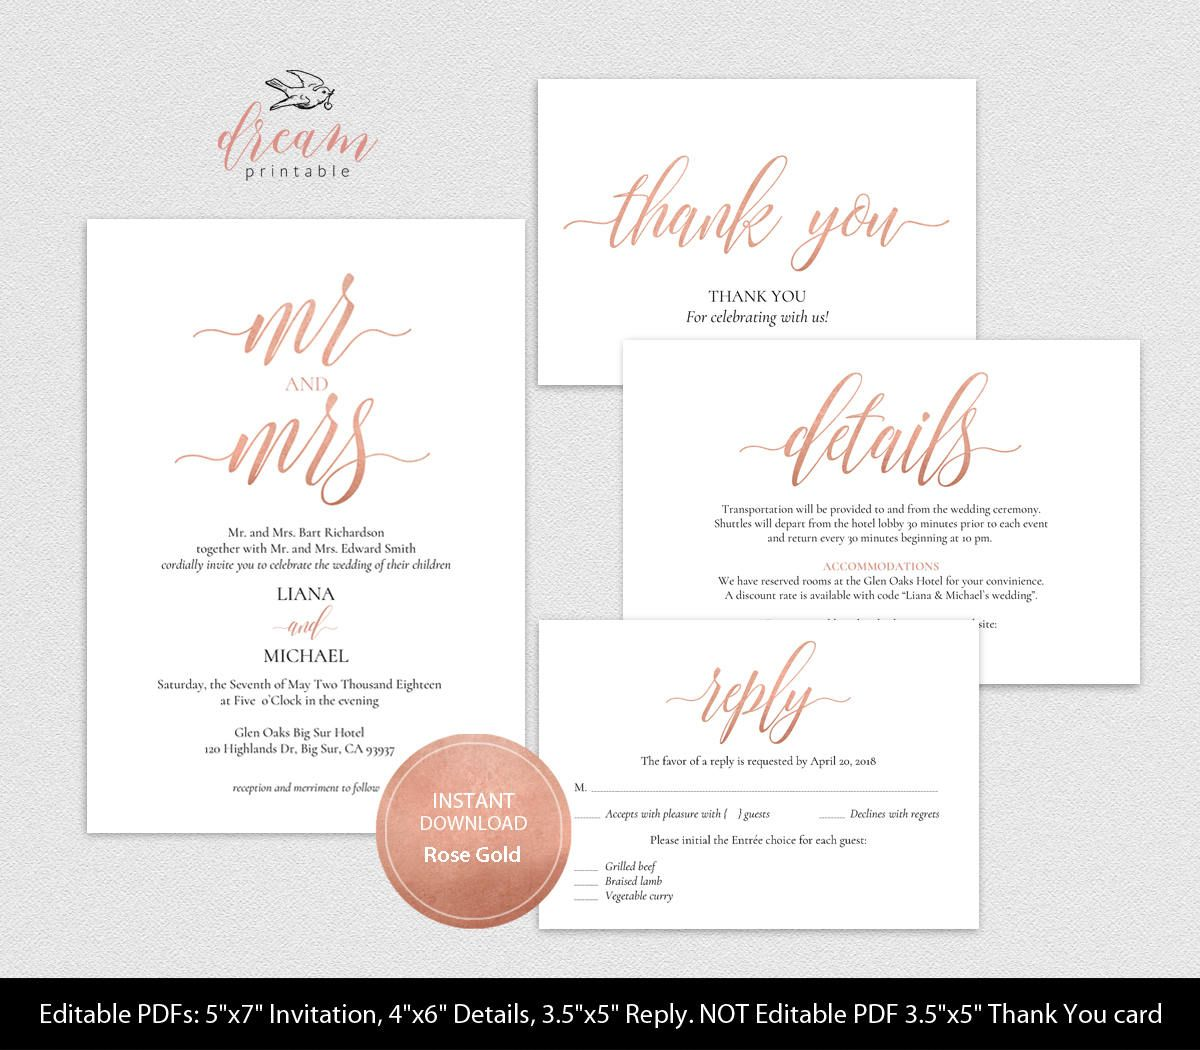 Instant Download Editable Pdf Template Set 5x7 Invitation 4x6 Details 3 5x5 Reply Rsvp 3 5x5 Tent Style Than Pdf Templates Wedding Printables Reception Signs